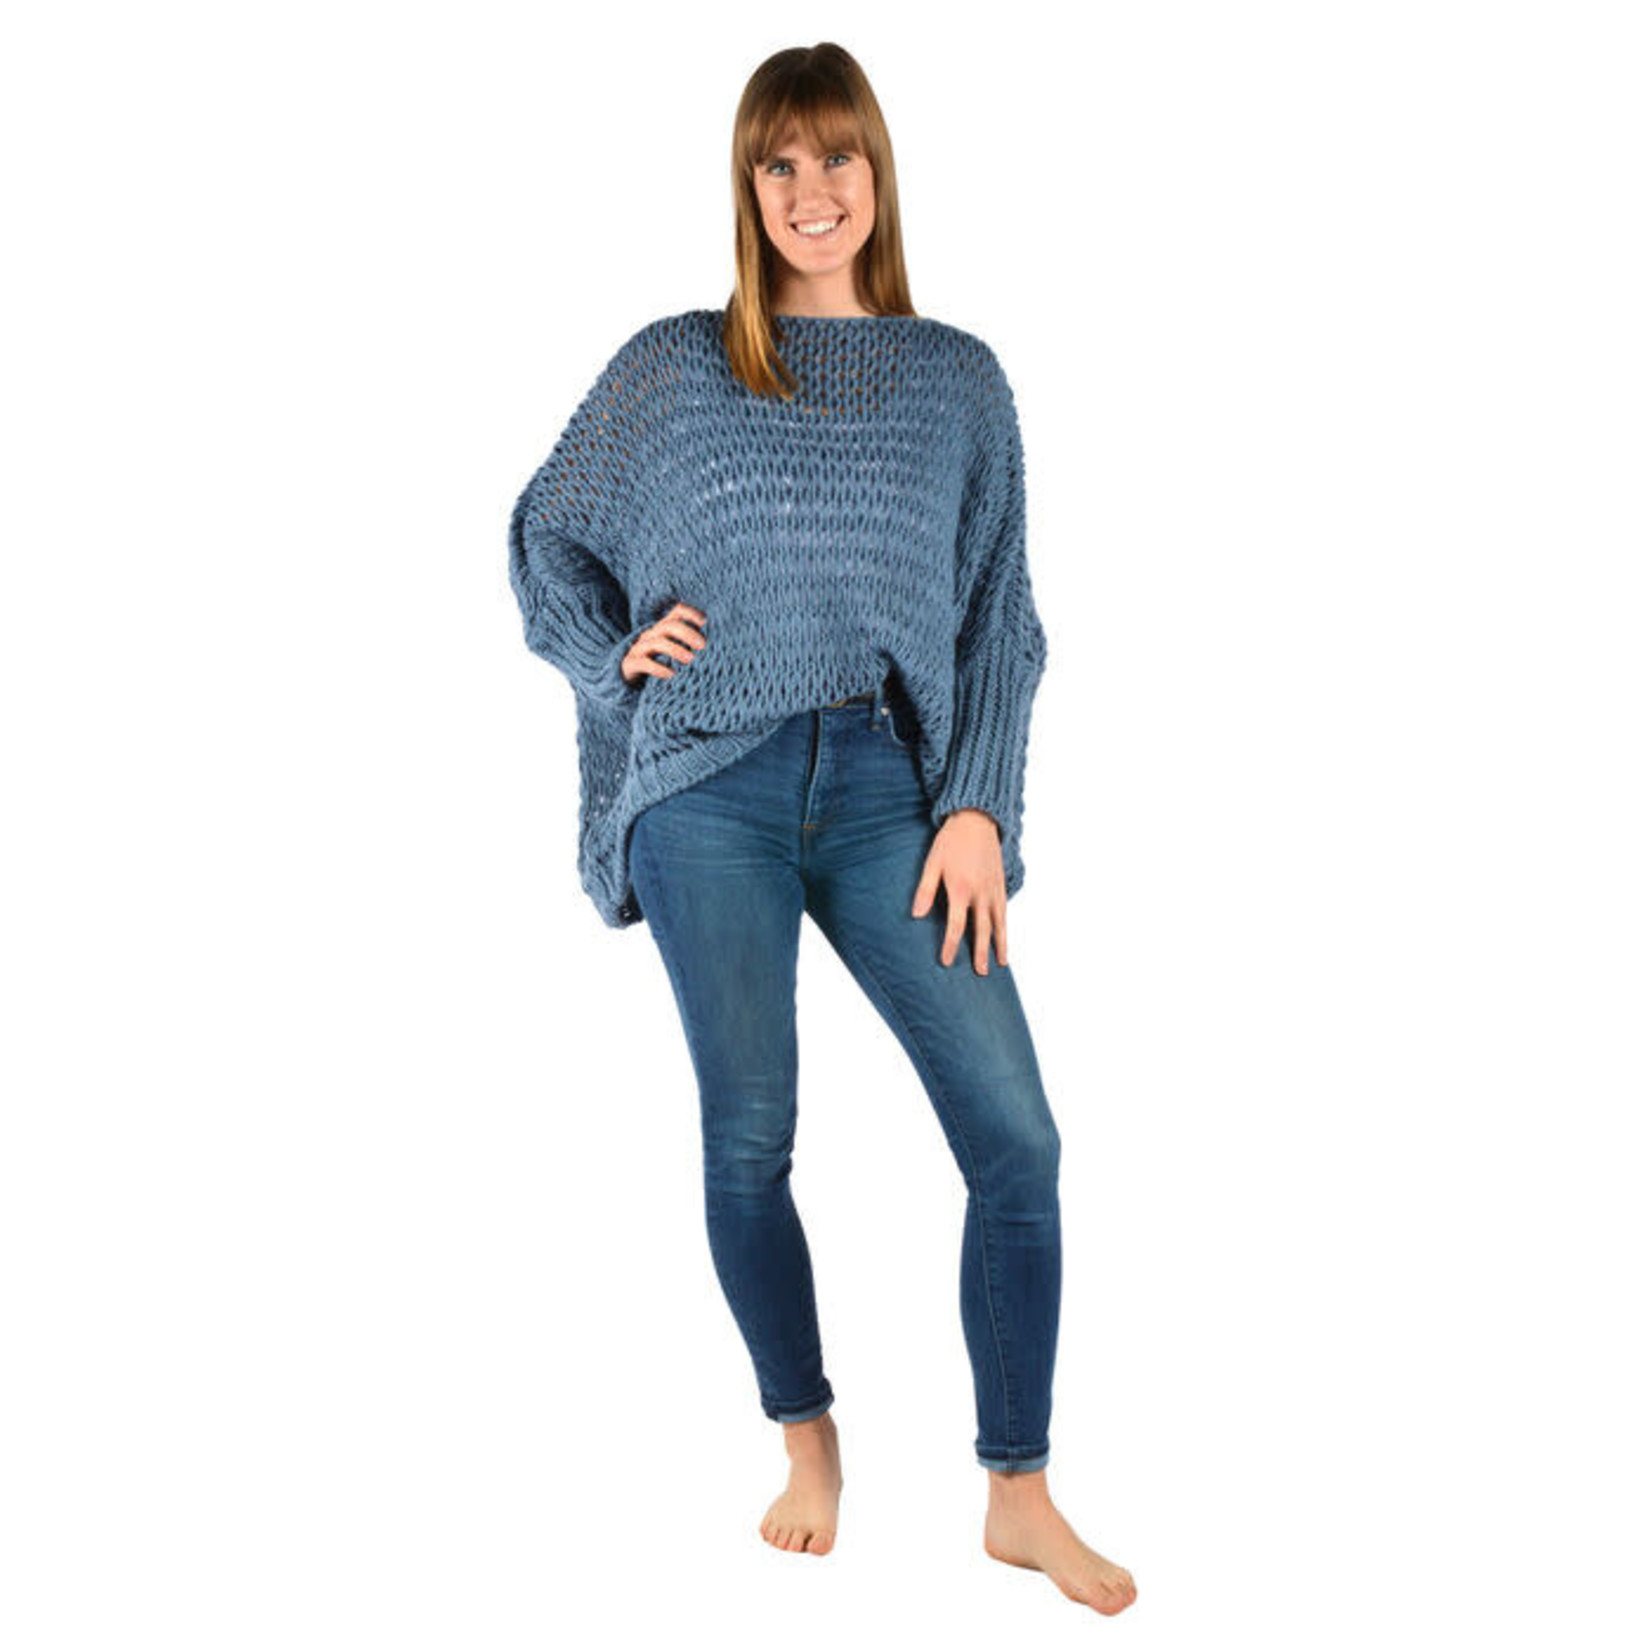 Catherine Lillywhites Open Weave Oversize Sweater Blue Jean